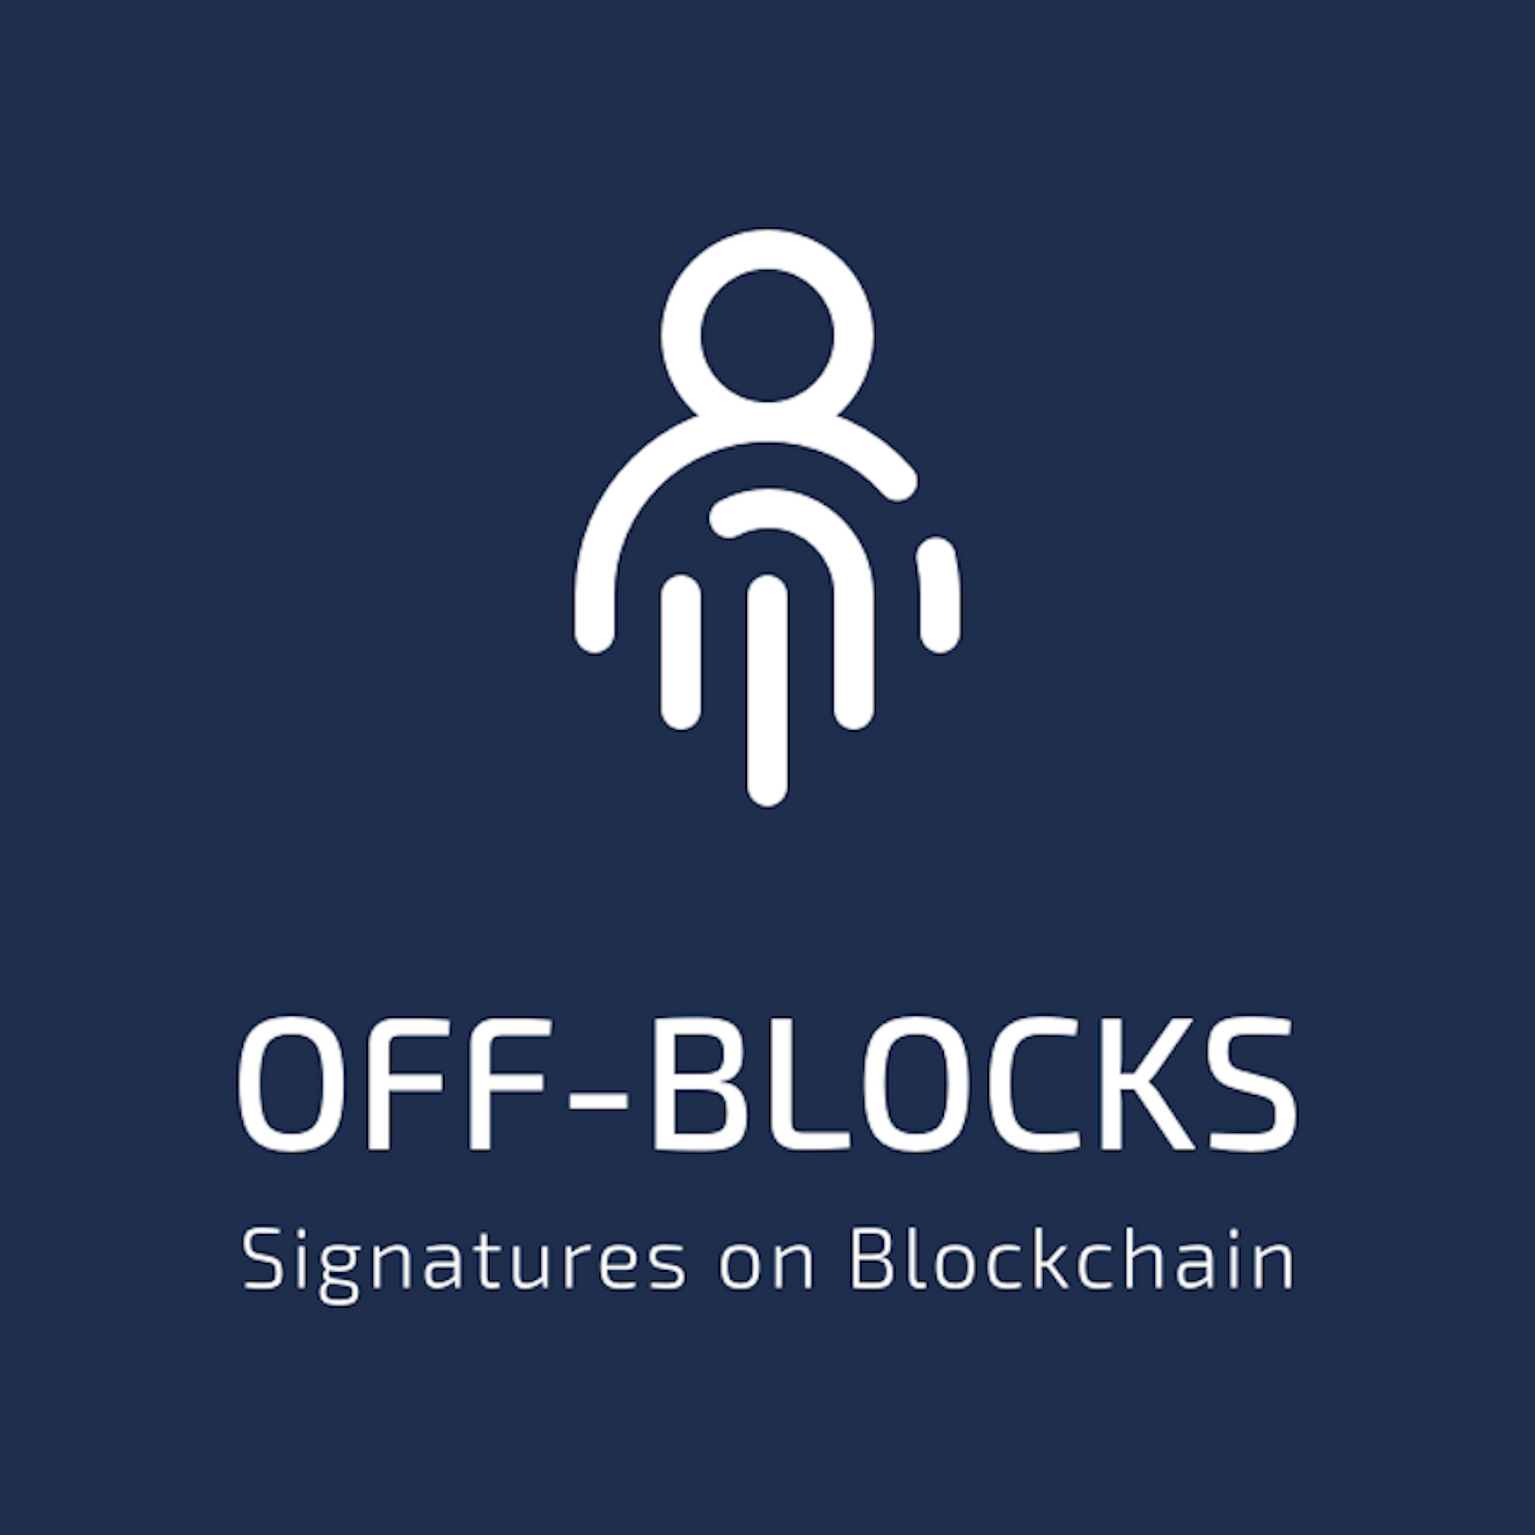 Off-Blocks ltd